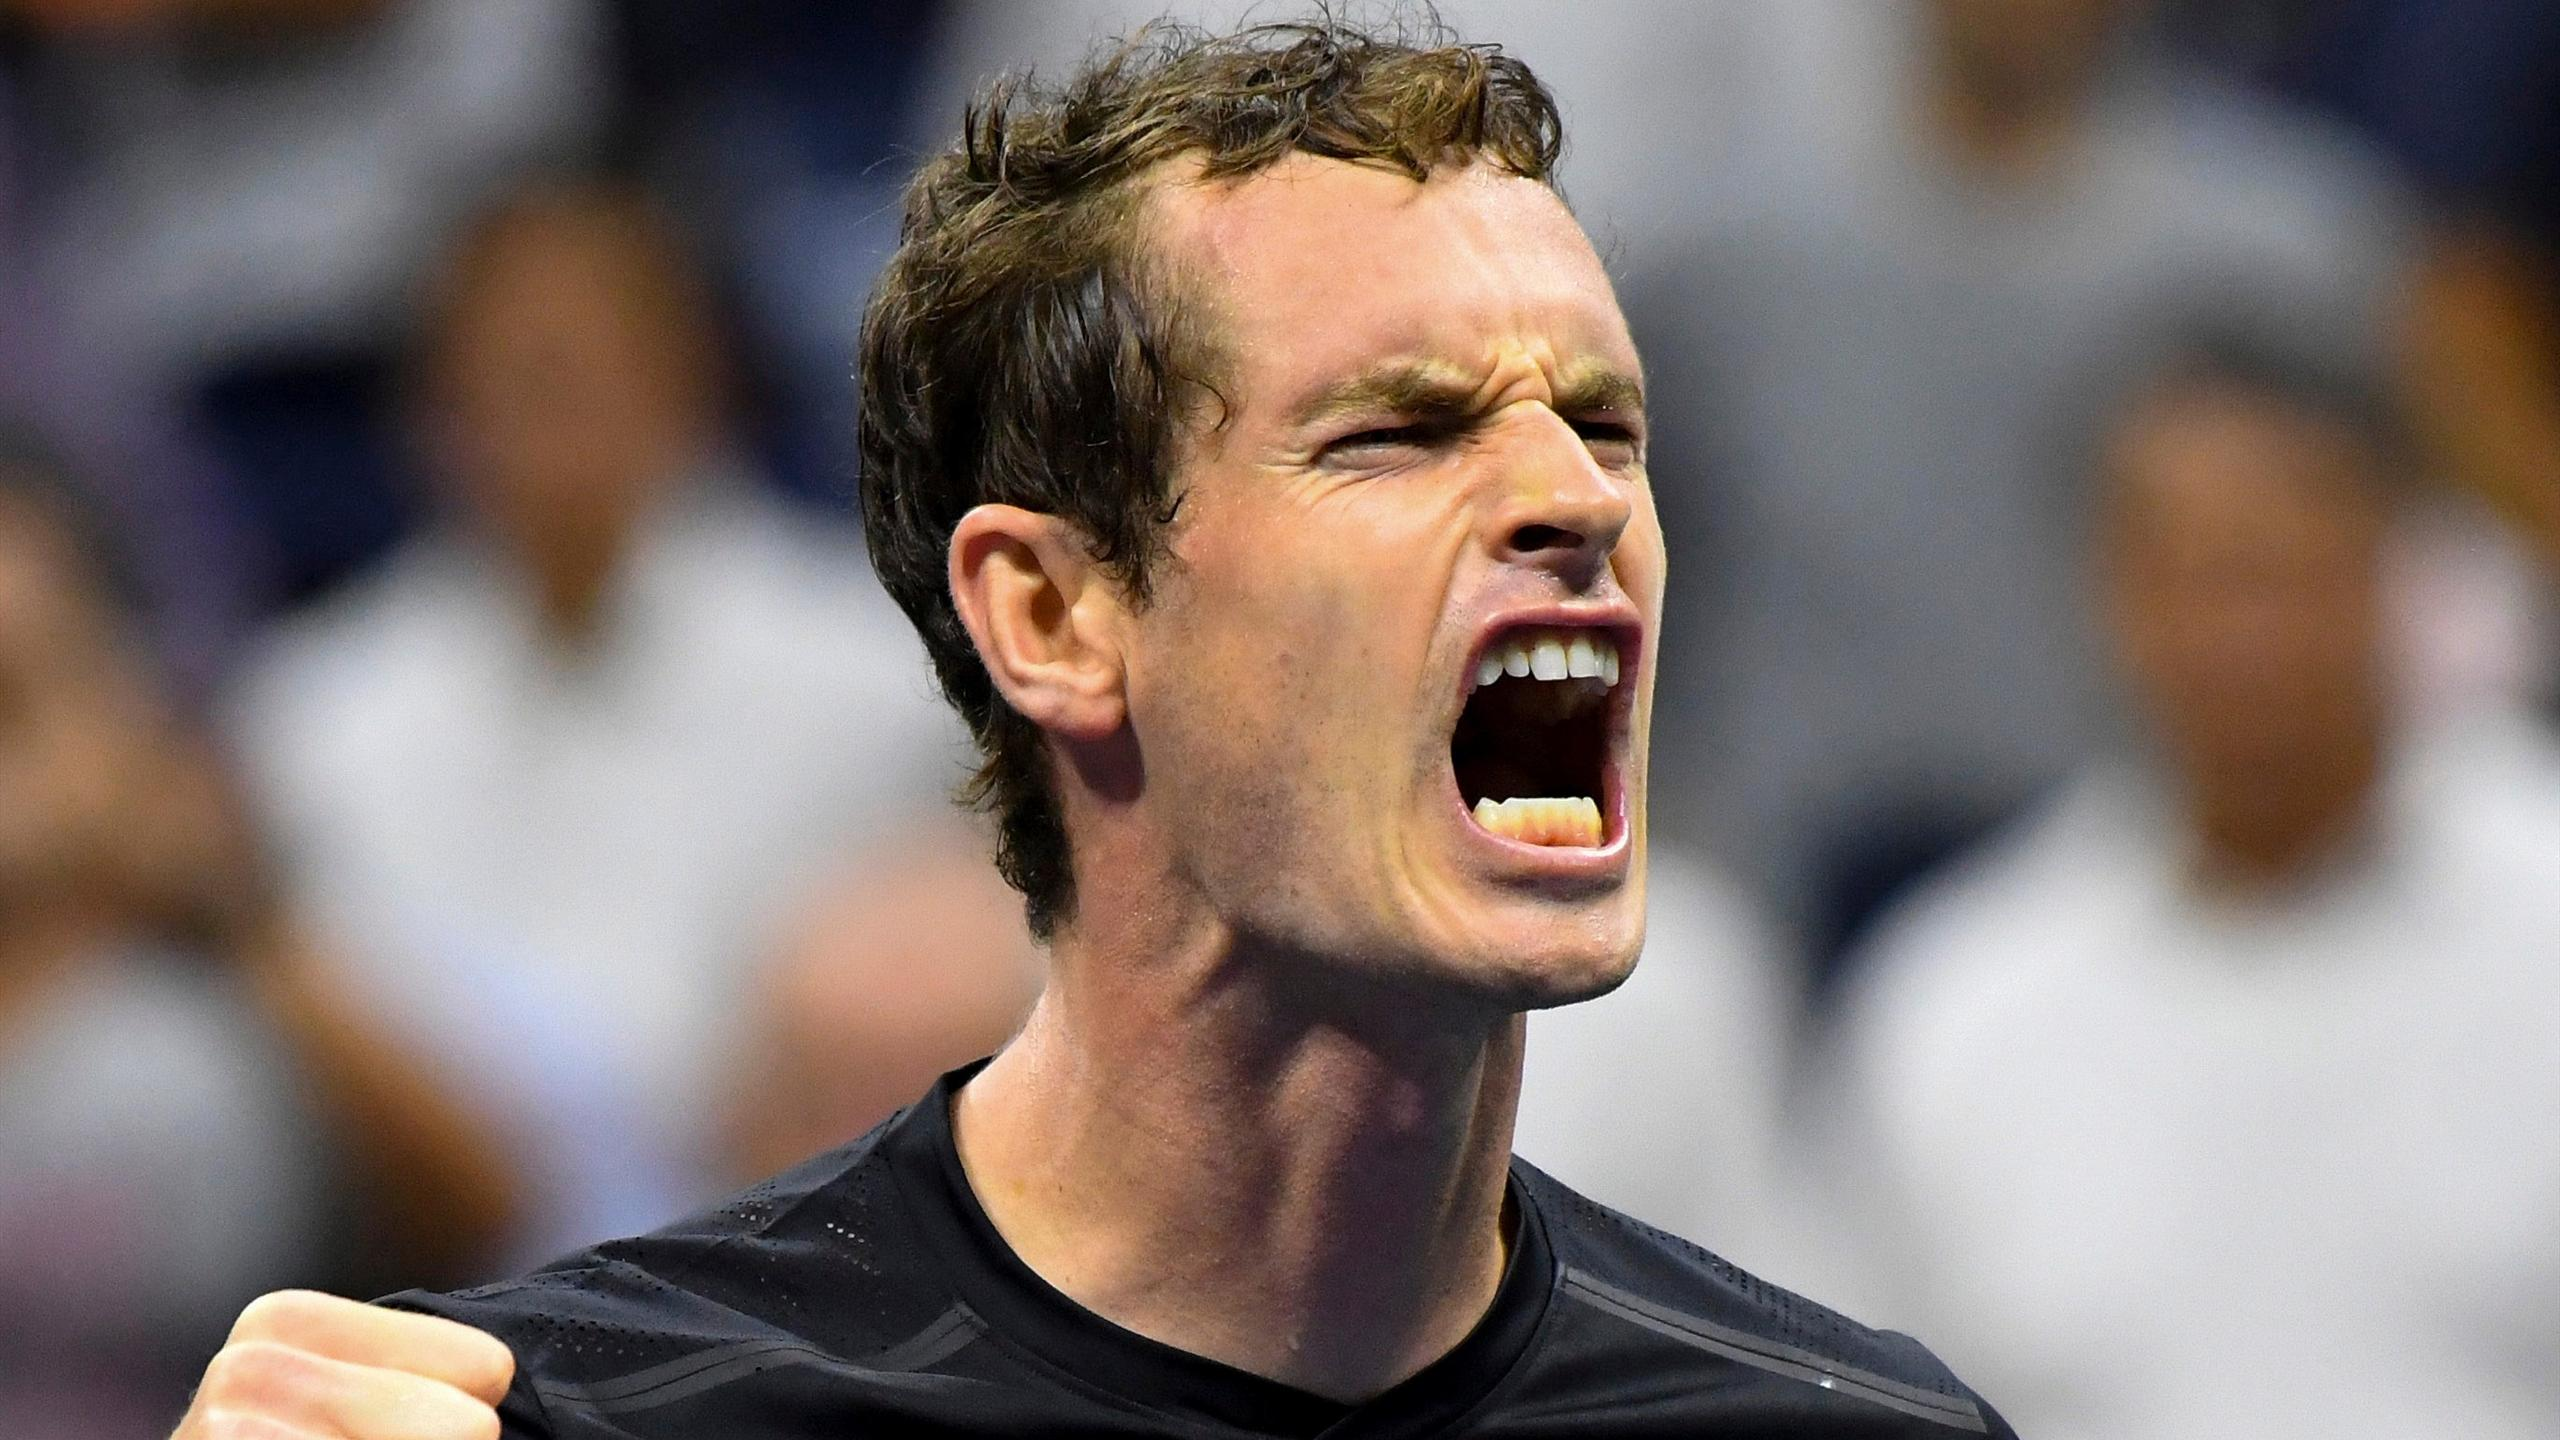 Andy Murray of Great Britain after beating Grigor Dimitrov of Bulgaria on day eight of the 2016 U.S. Open tennis tournament at USTA Billie Jean King National Tennis Center